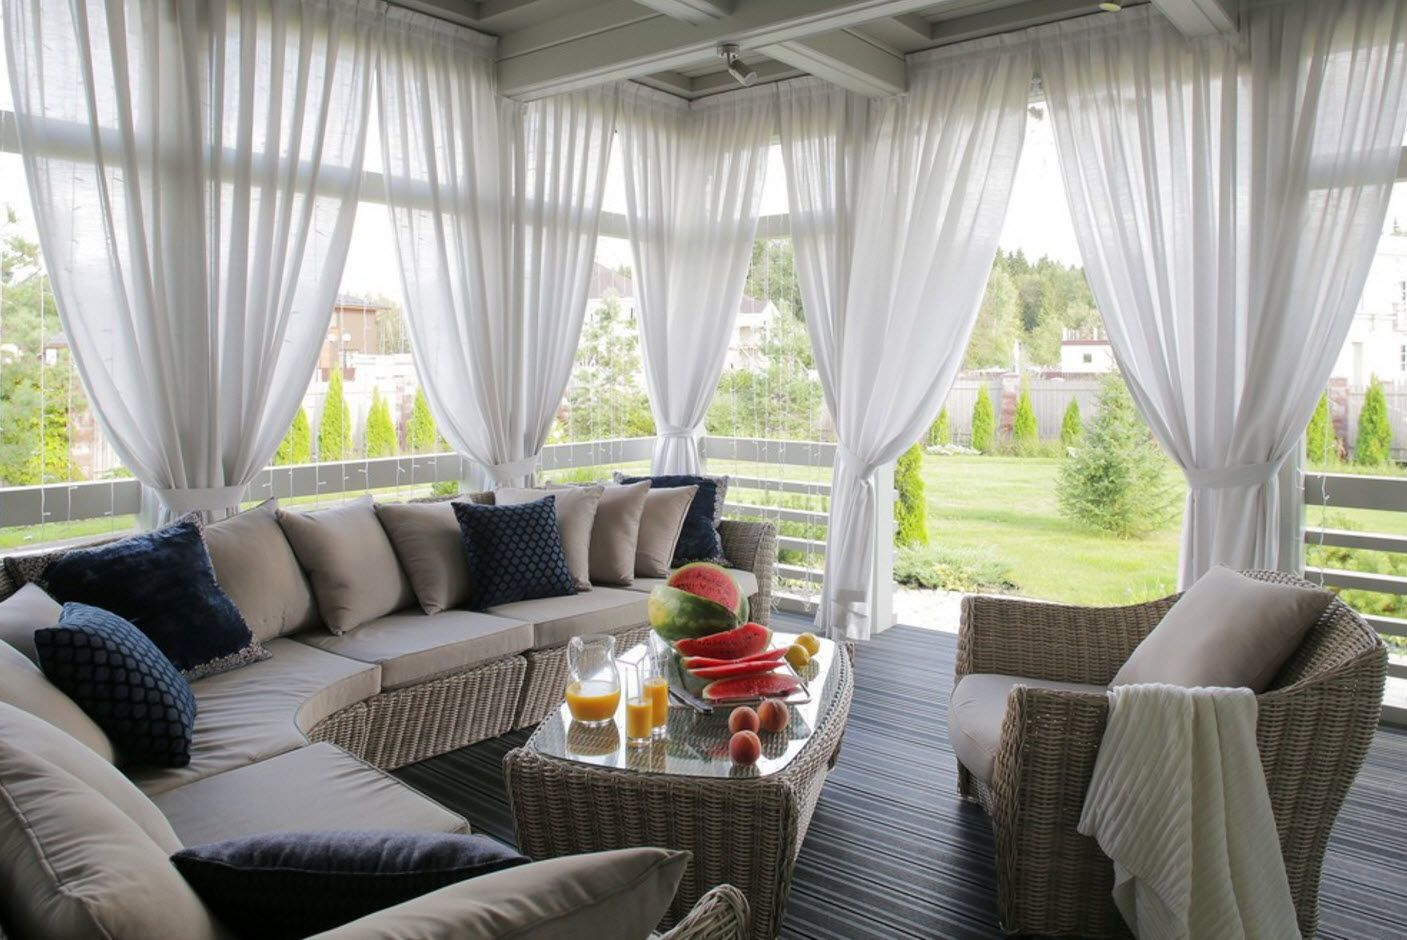 Country House Porch Decoration & Design Ideas. Cozy backyard patio with tulle curtains